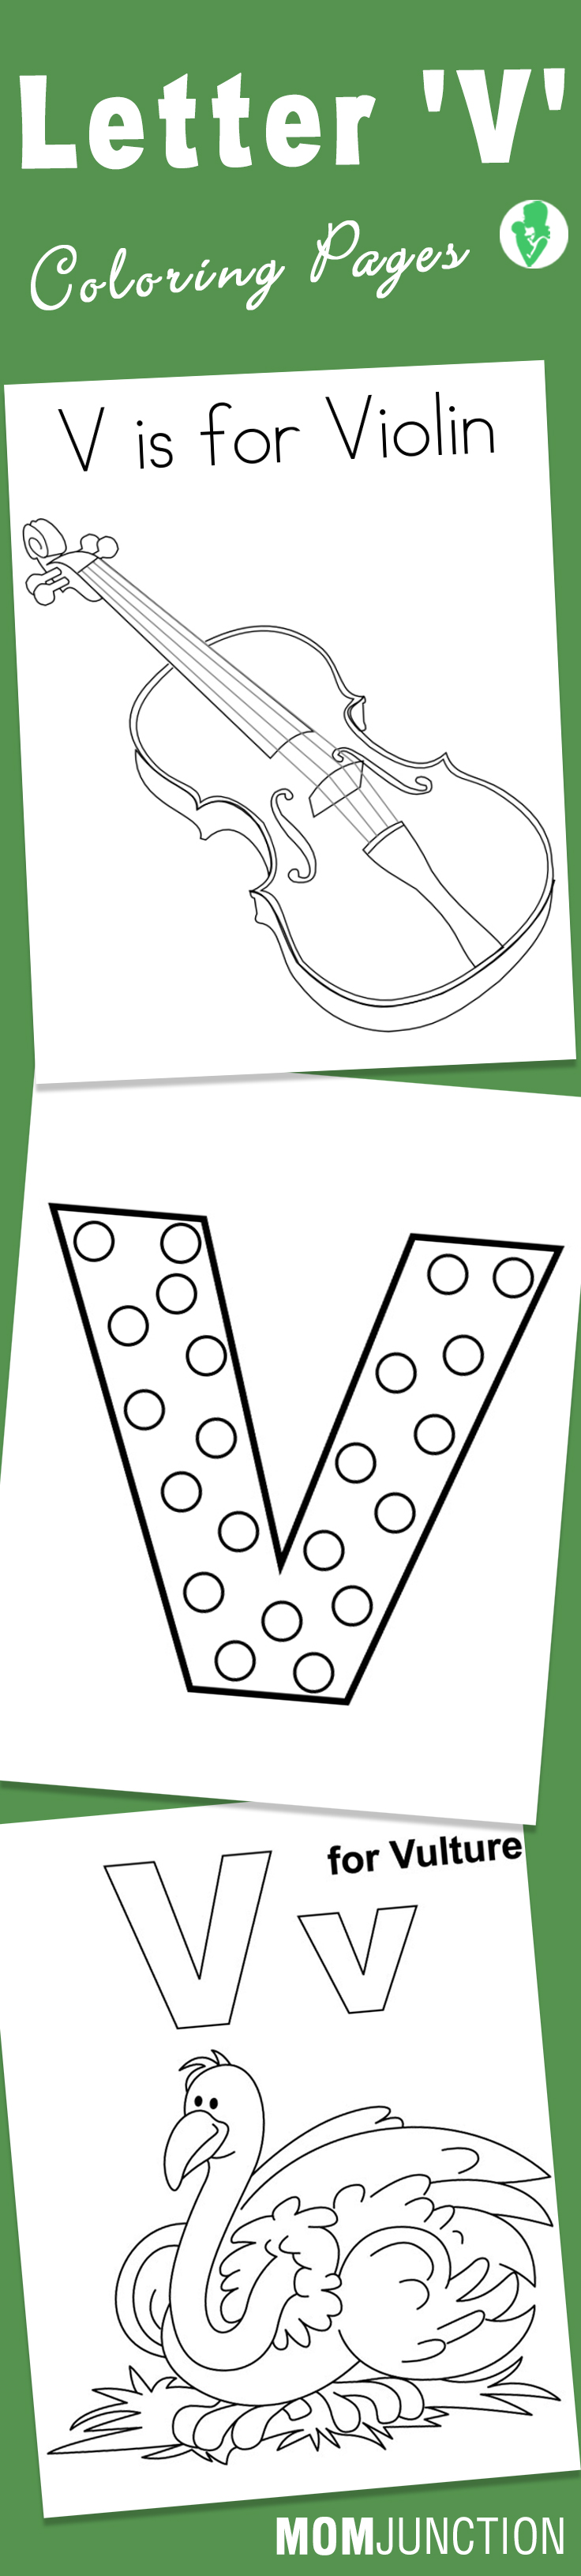 Top 10 Letter V Coloring Pages Your Toddler Will Love To Learn Color